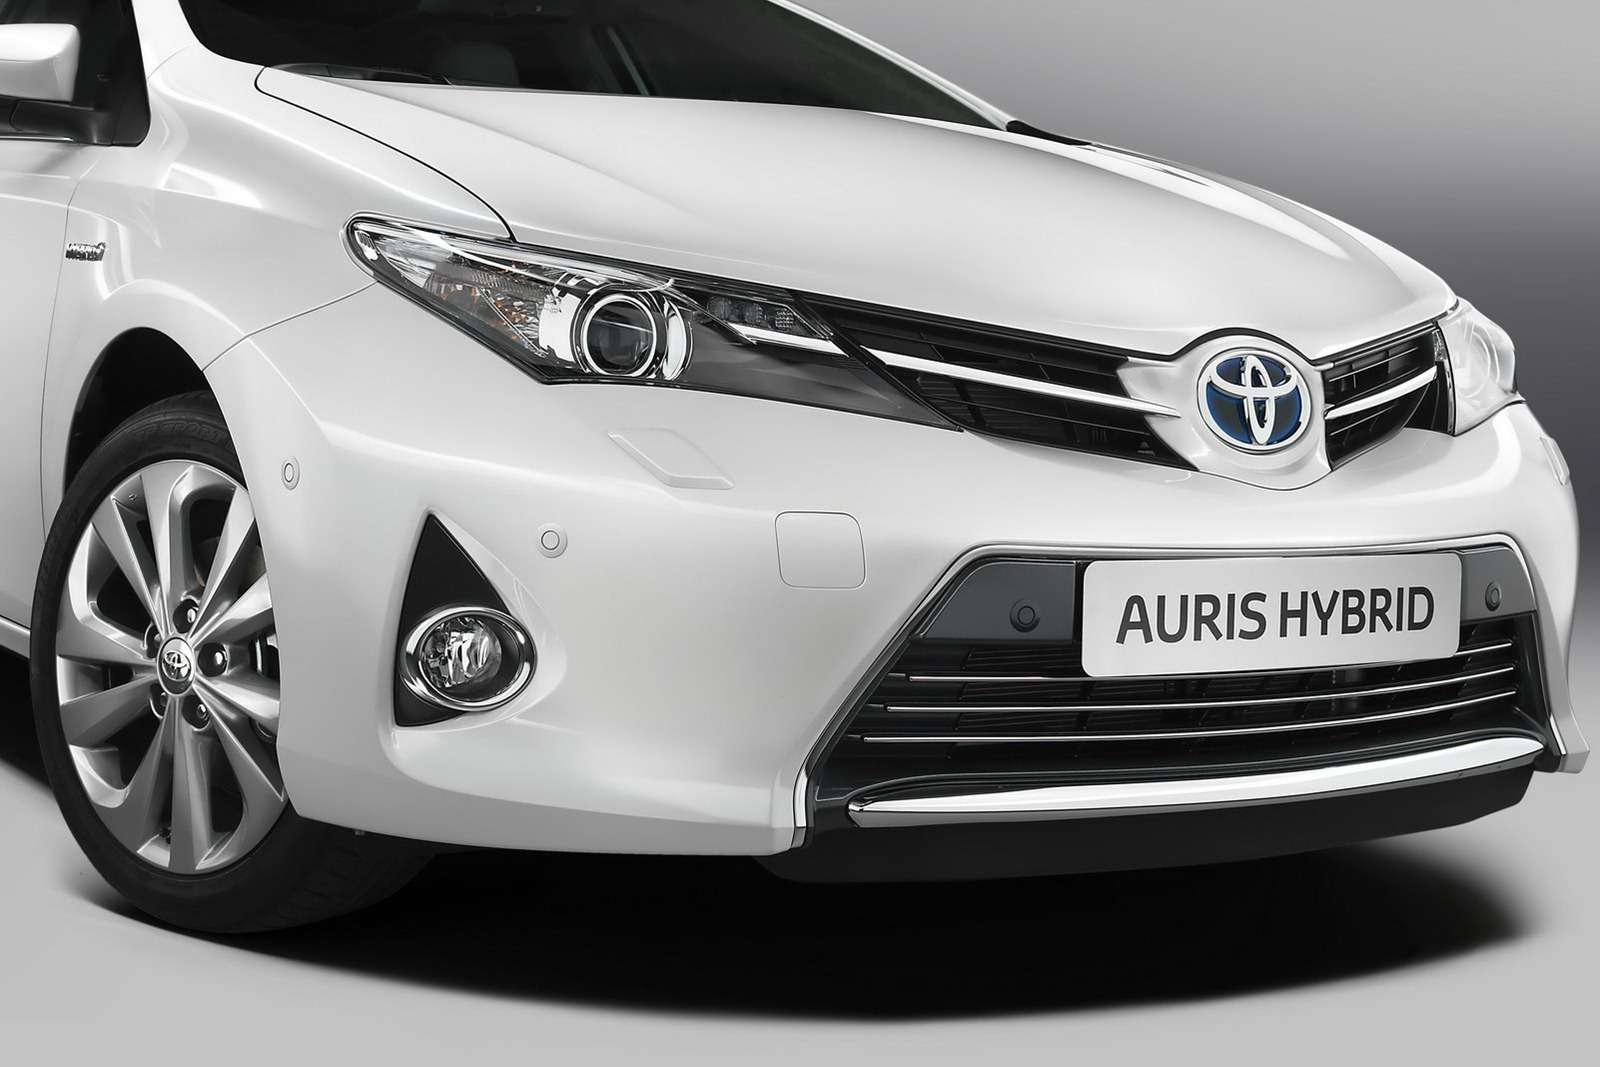 nowa toyota auris i auris hybrid 2013 oficjalnie ujawnione debiut w pary u motofilm. Black Bedroom Furniture Sets. Home Design Ideas